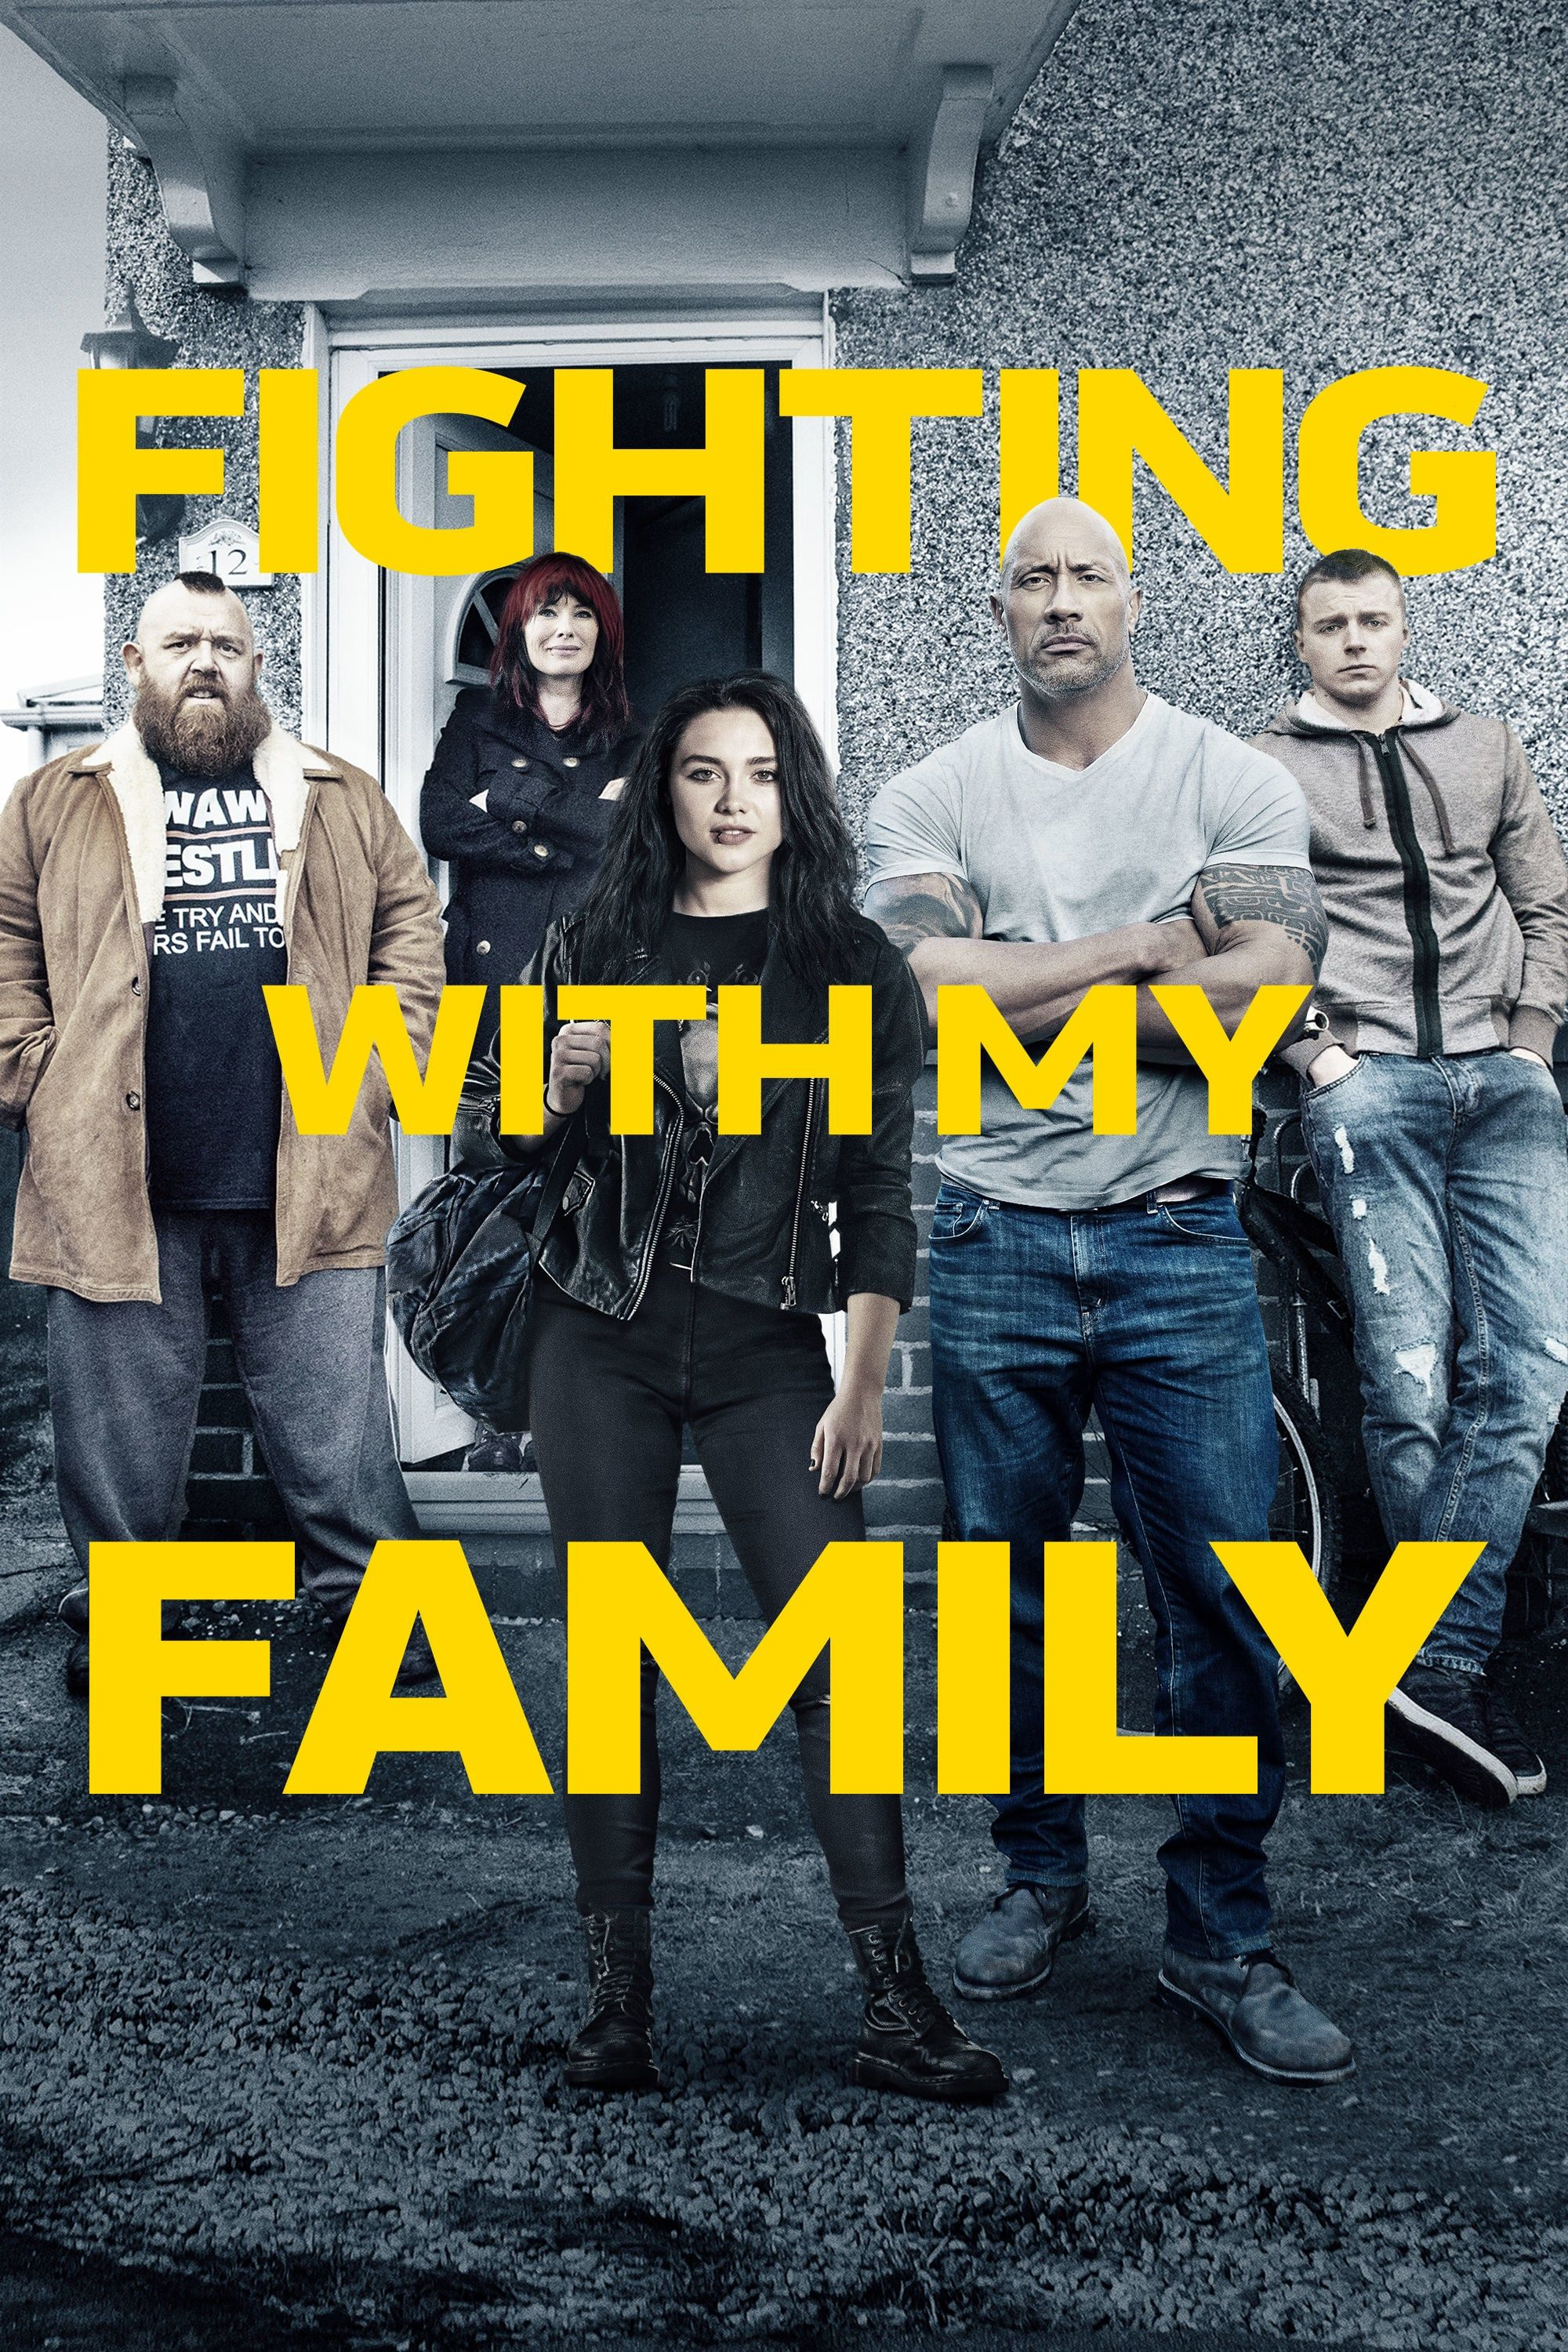 Full Hq Watch Fighting With My Family Full Movie 2019 Online Free Fightingwithmyfamily F Peliculas Completas Ver Peliculas Completas Peliculas Divertidas